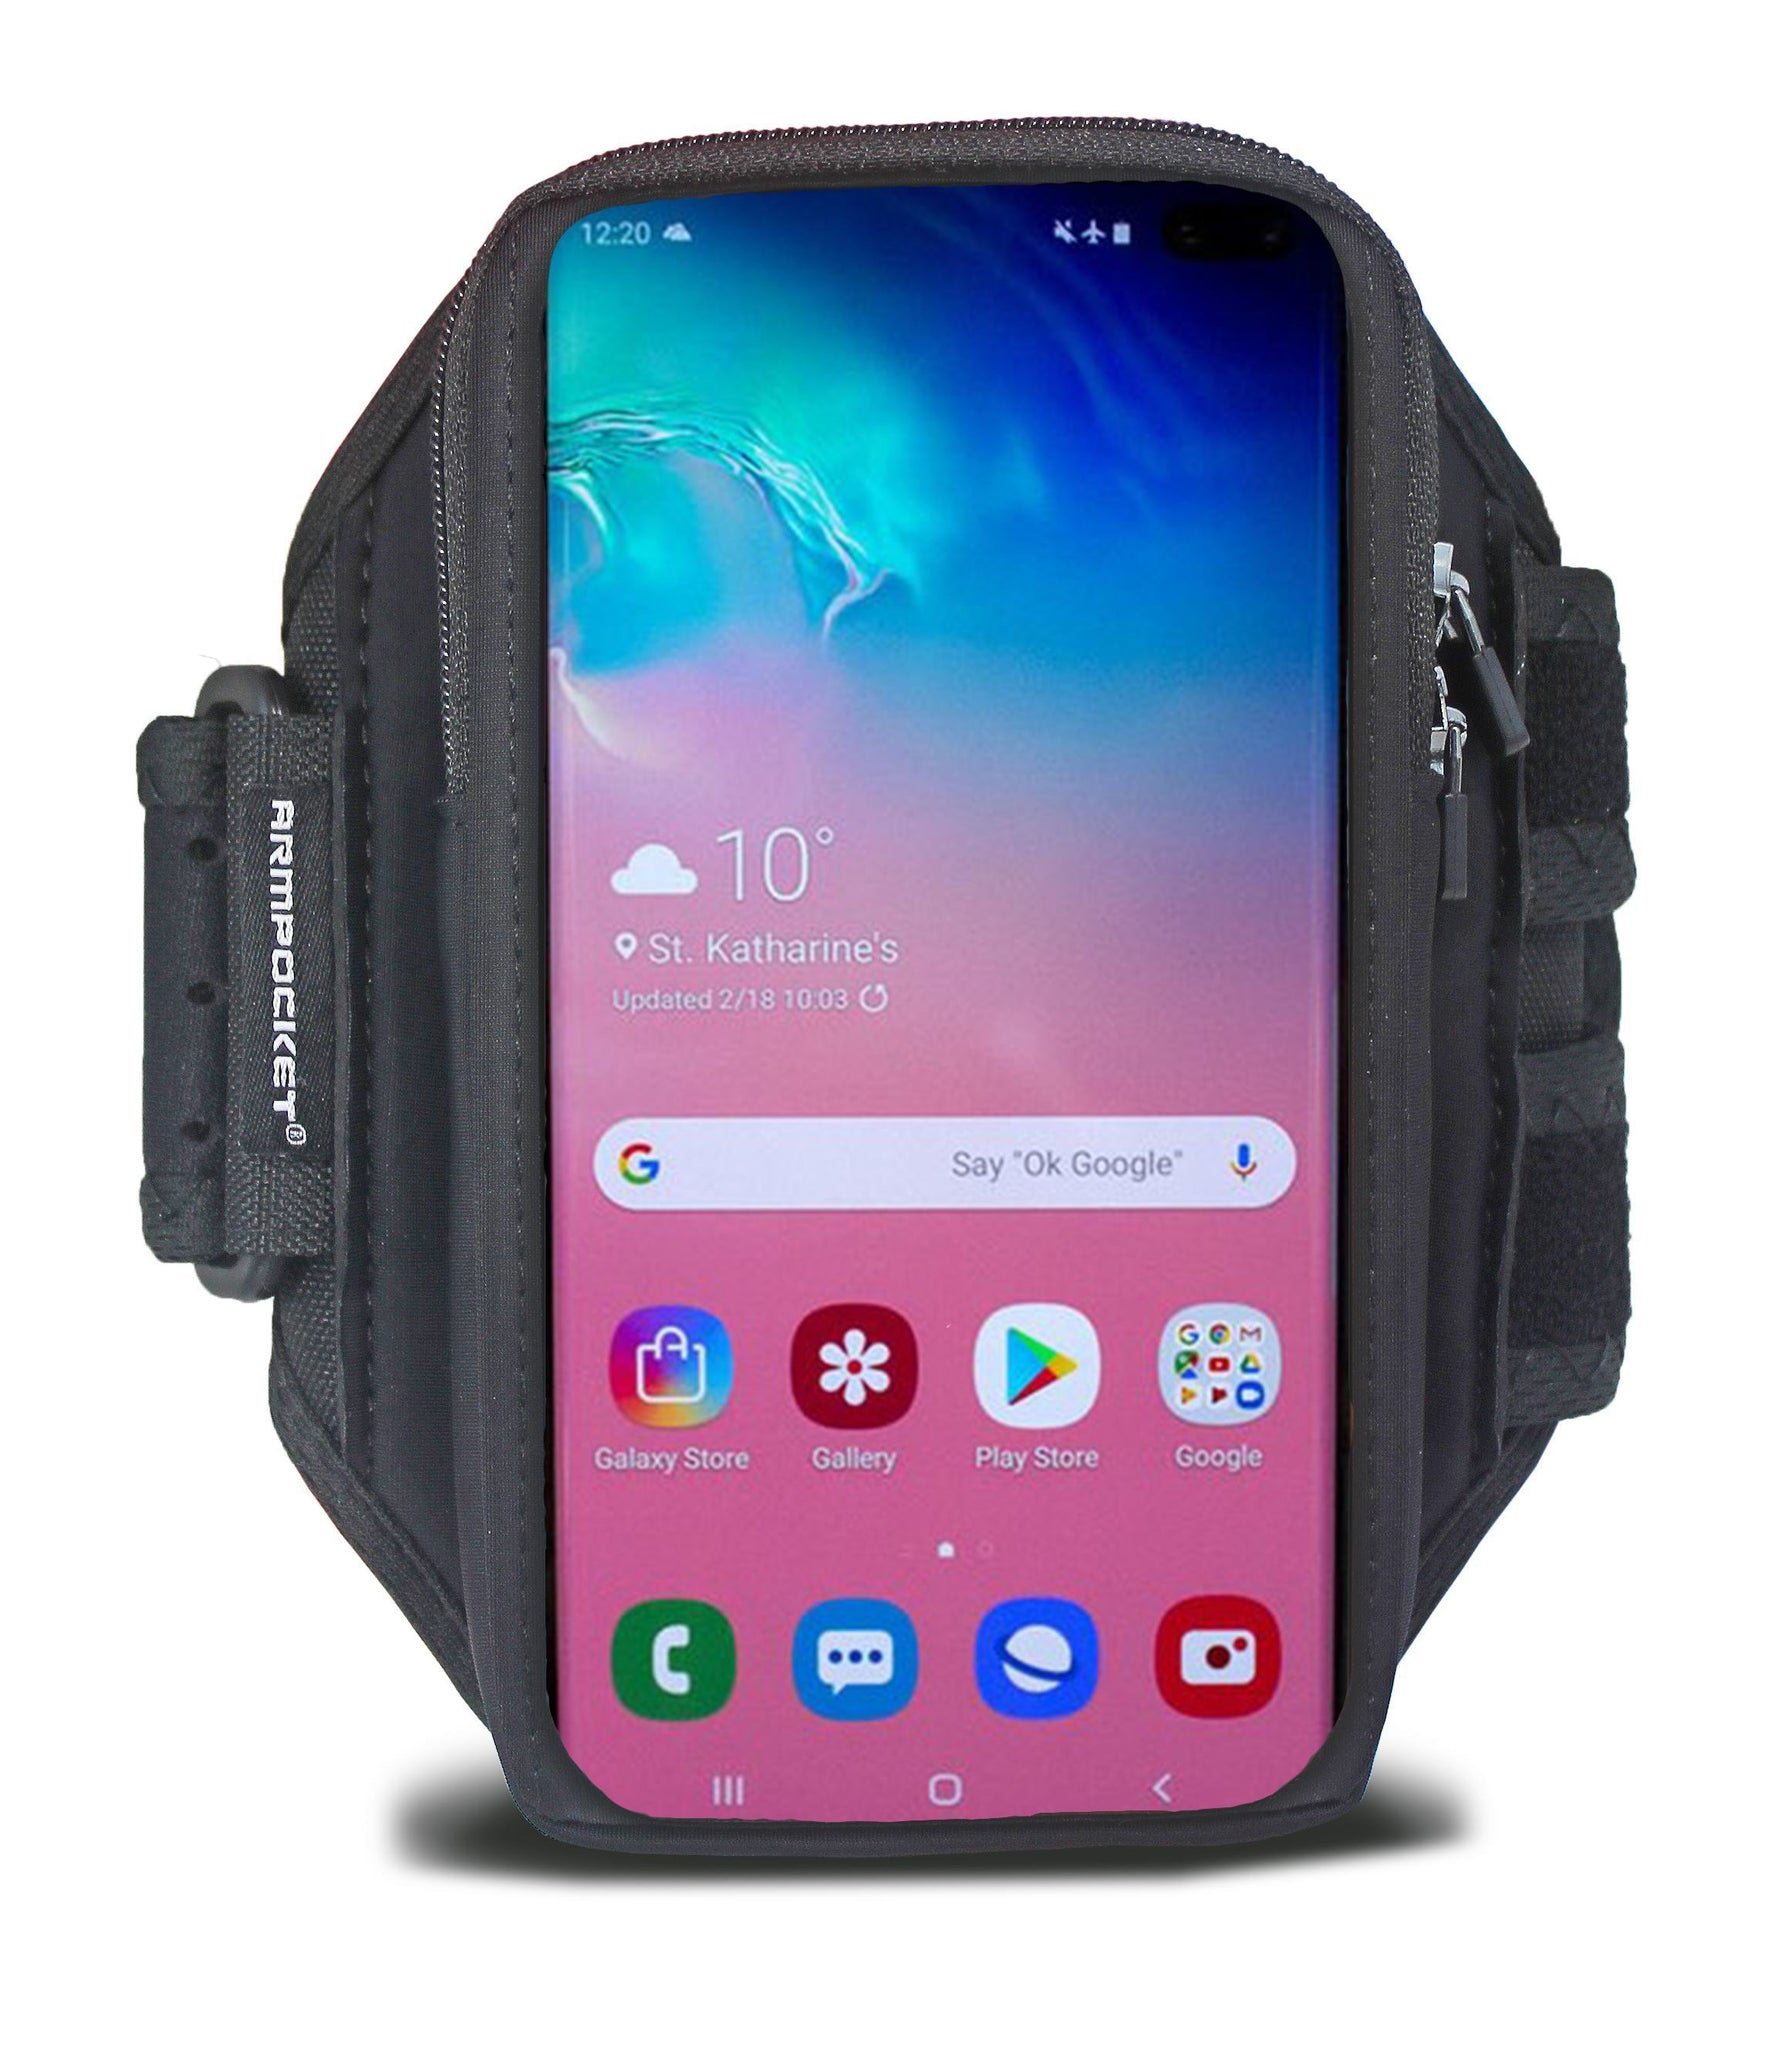 Best Google Pixel 3 armband for running and fitness – Armpocket